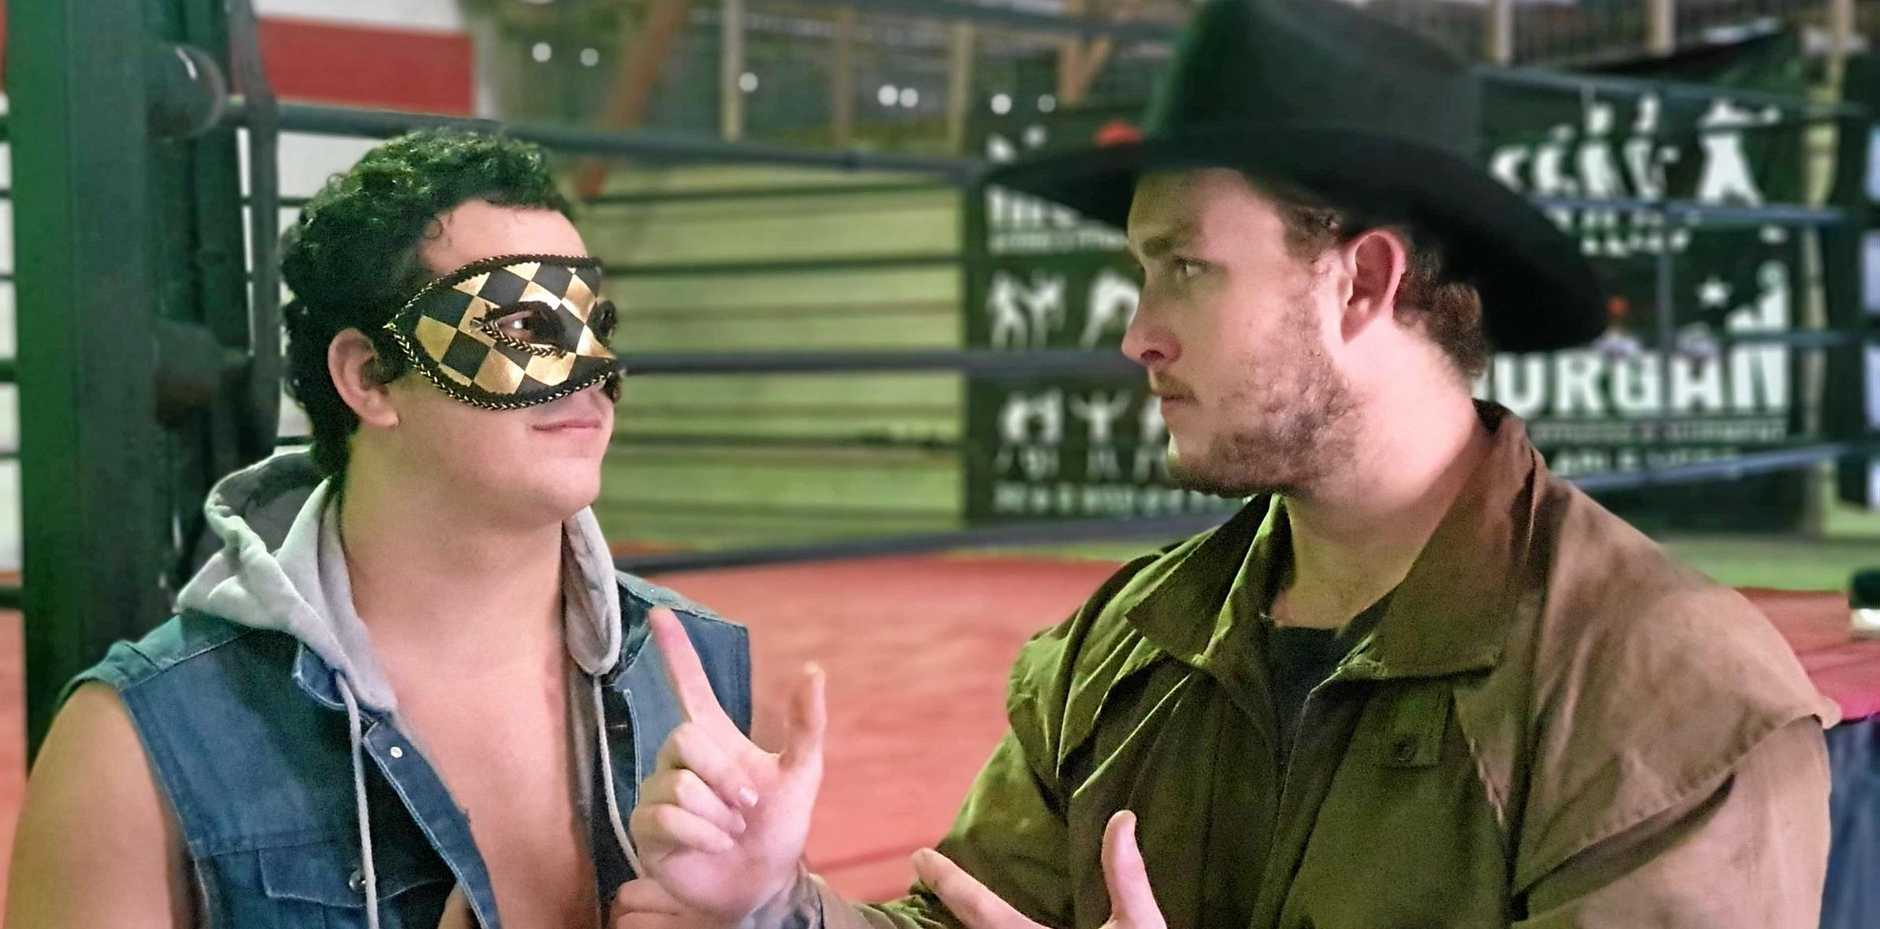 READY TO RUMBLE: Wyatt Medlin, a.k.a Colt Winchester, will face off against Outeuse Law on Saturday from 6pm at the Rocky Sports Club.